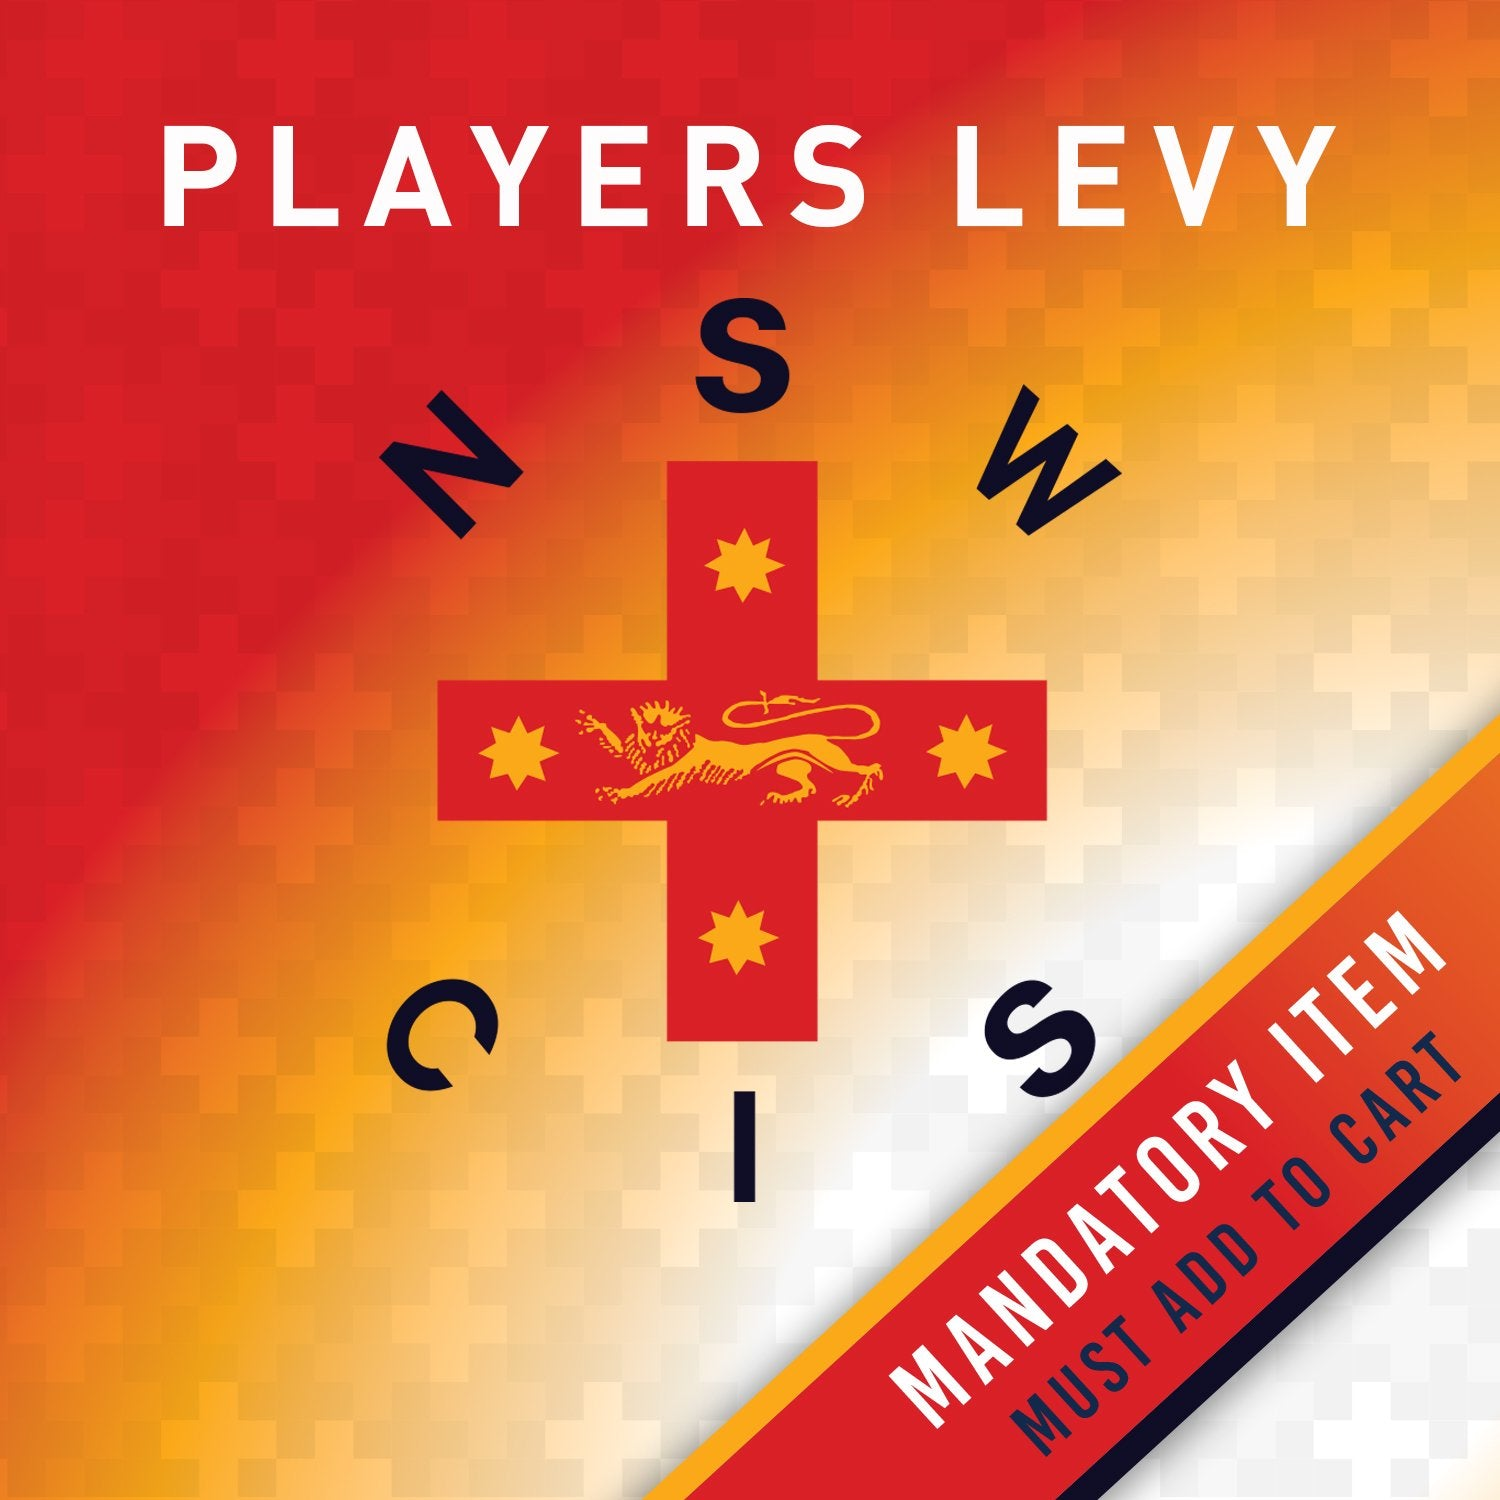 MANDATORY ITEM - PLAYERS LEVY - NSW CIS Secondary Girls Tennis